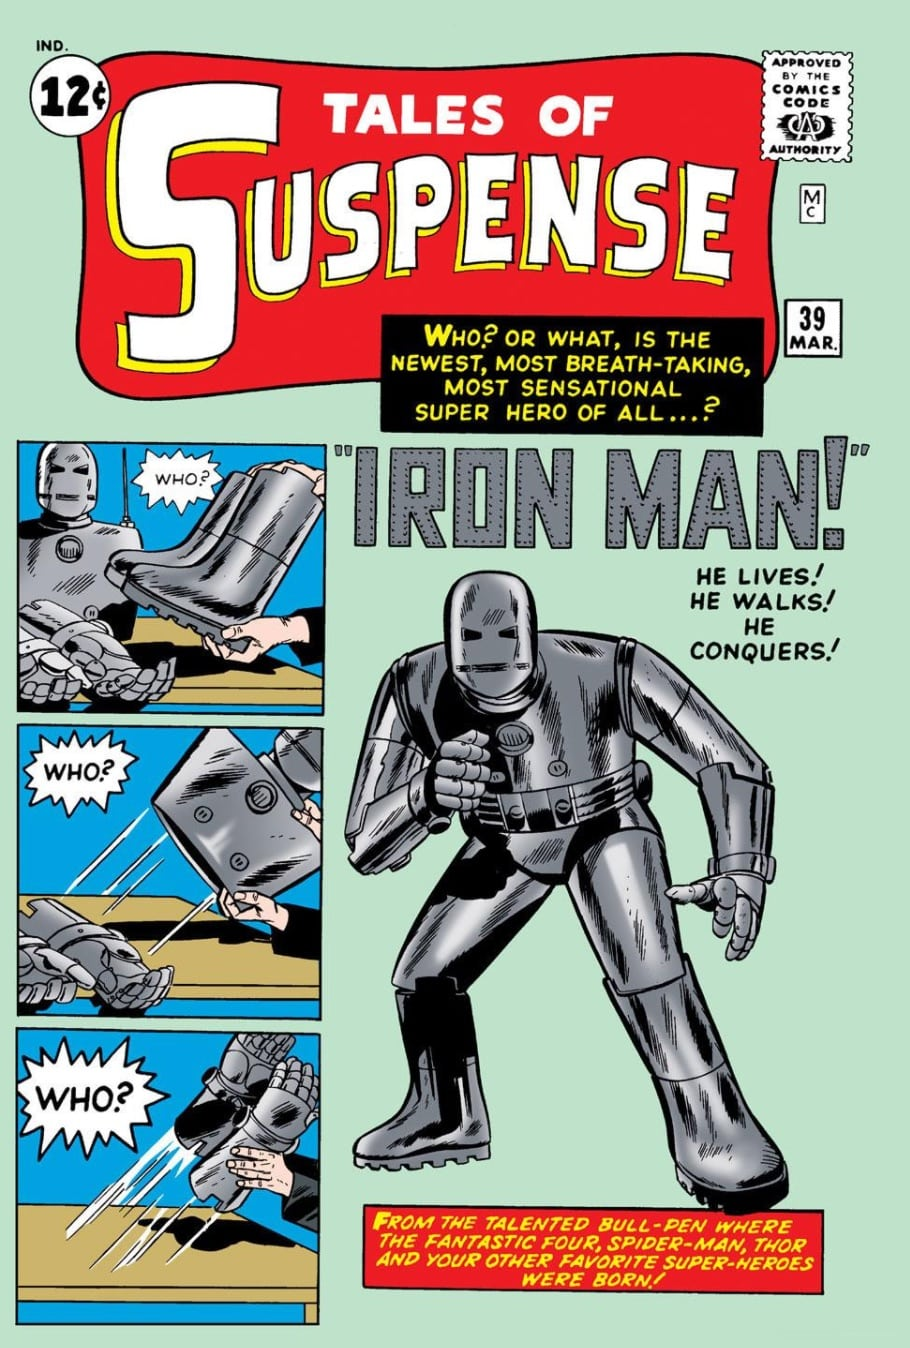 Marvel Comics of 1963 Tales of Suspense